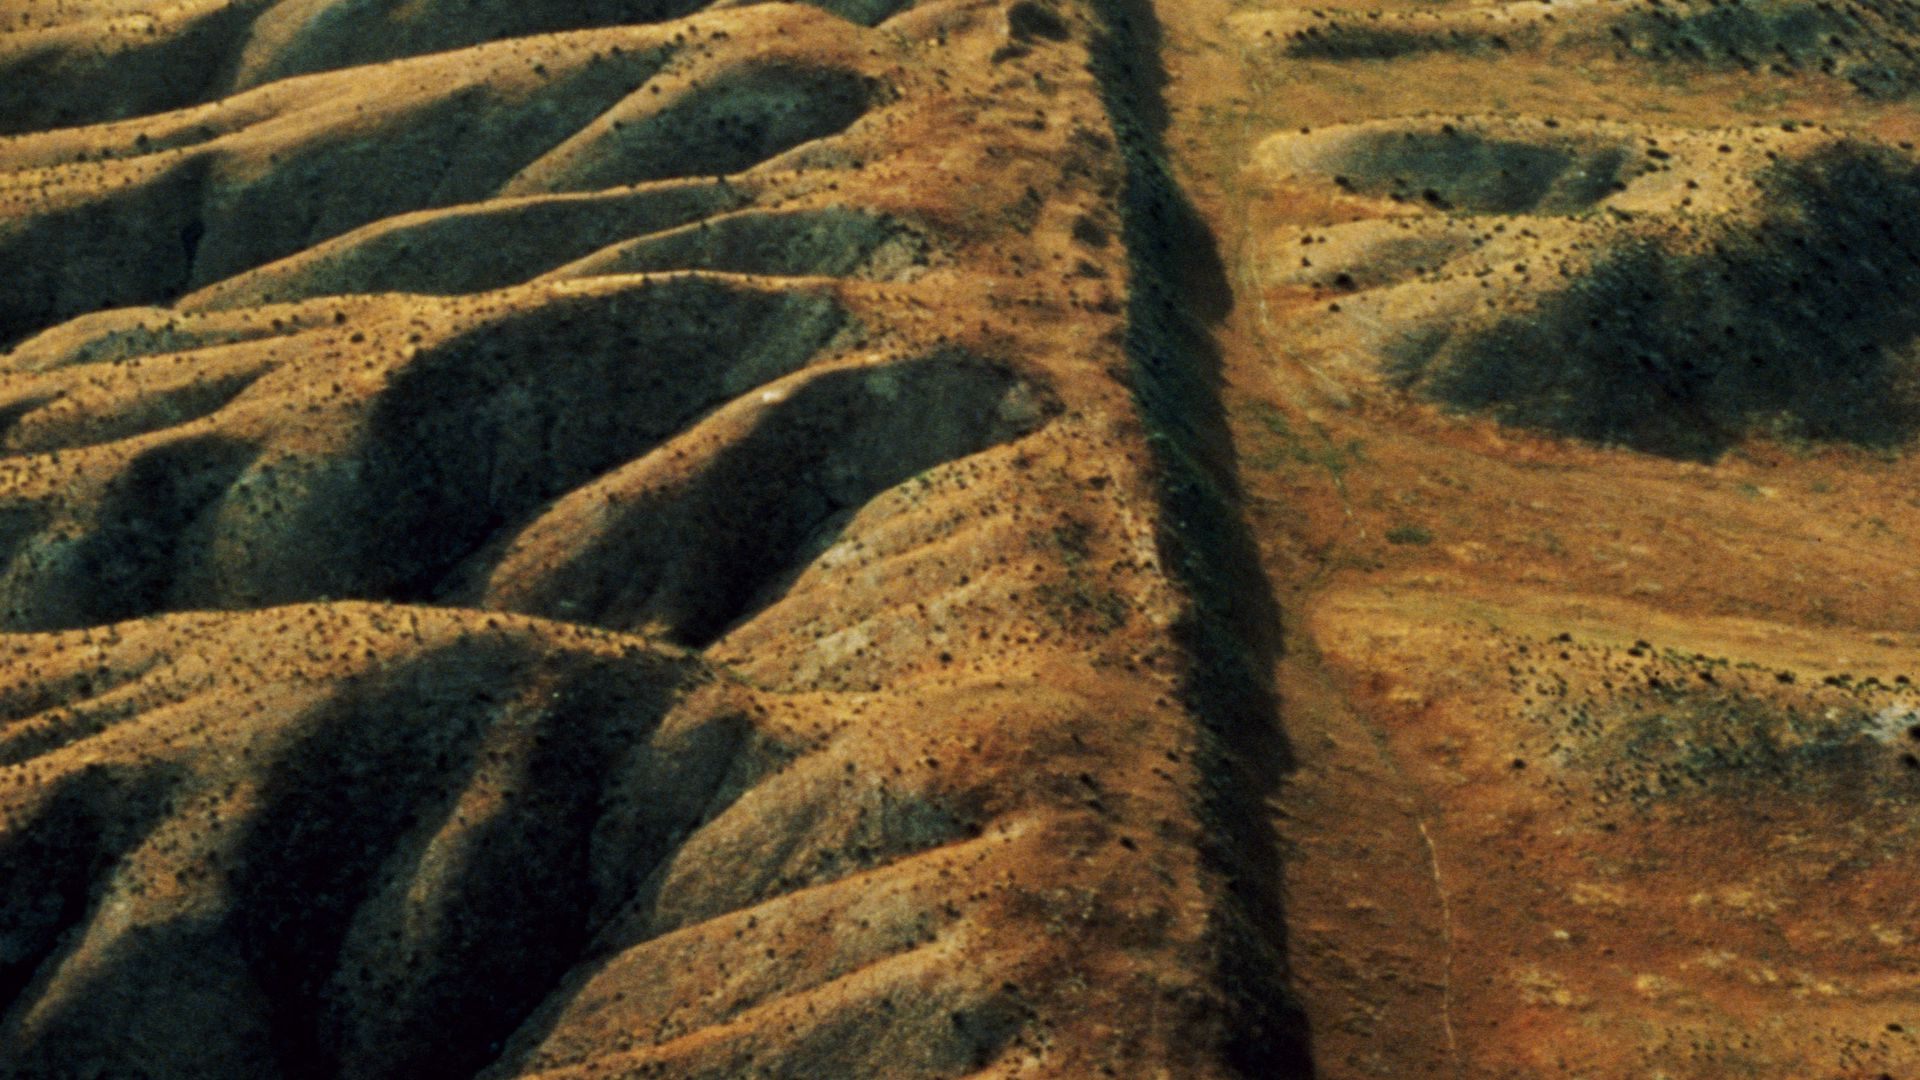 A photo of the San Andreas fault.